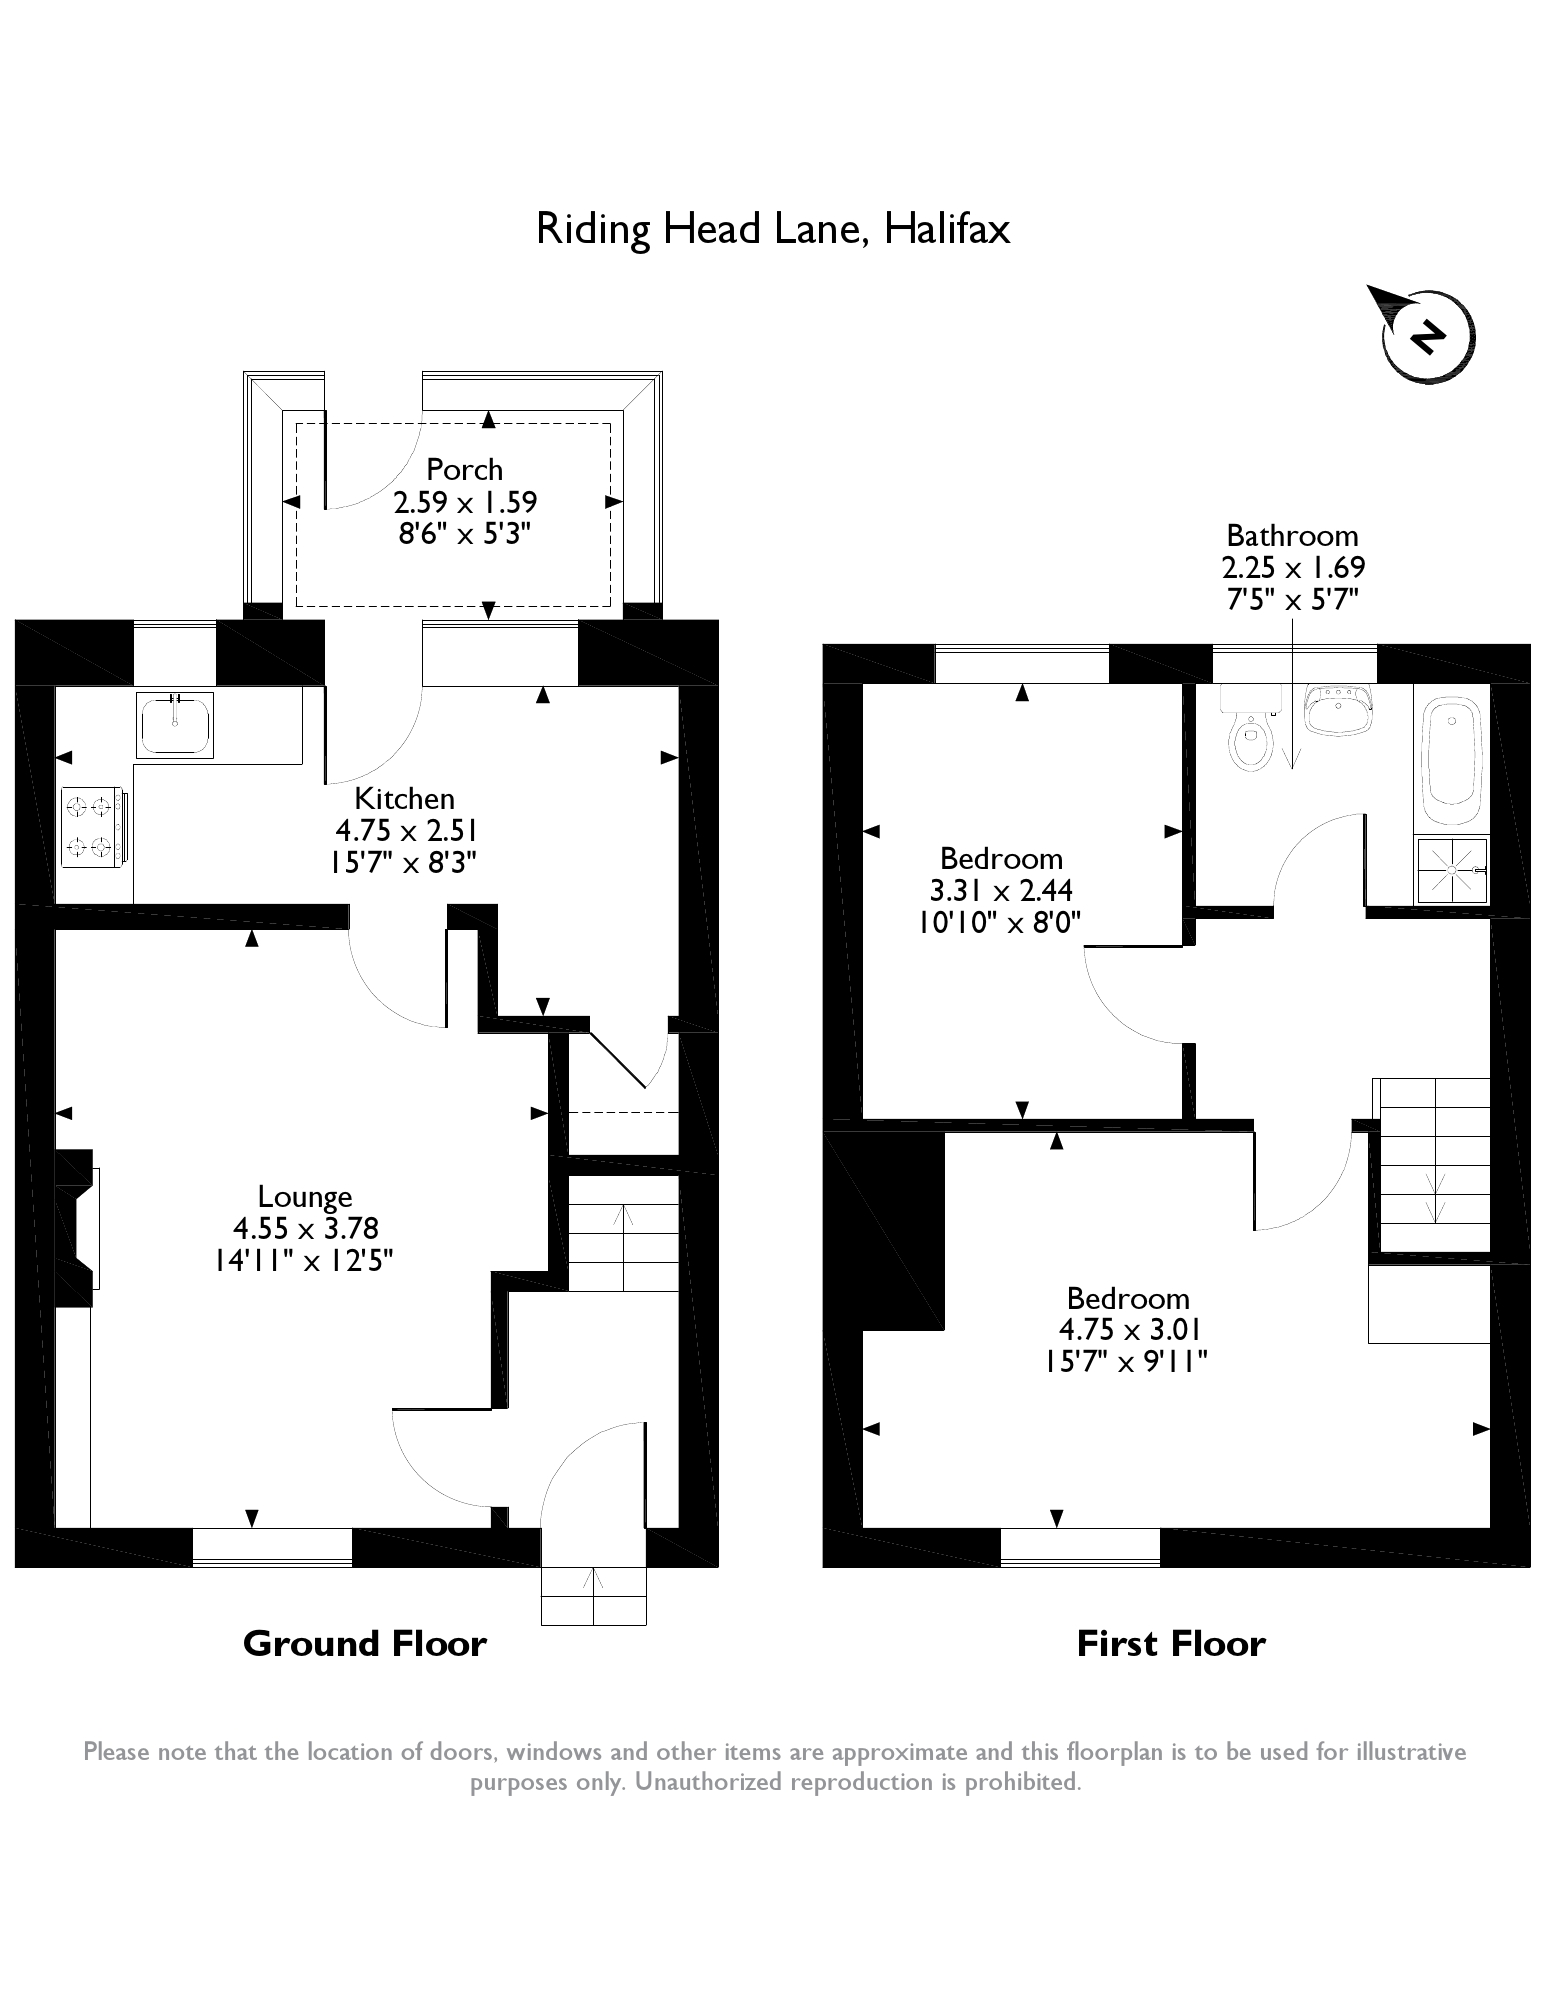 Riding Head Lane, Halifax, HX2 floor plan